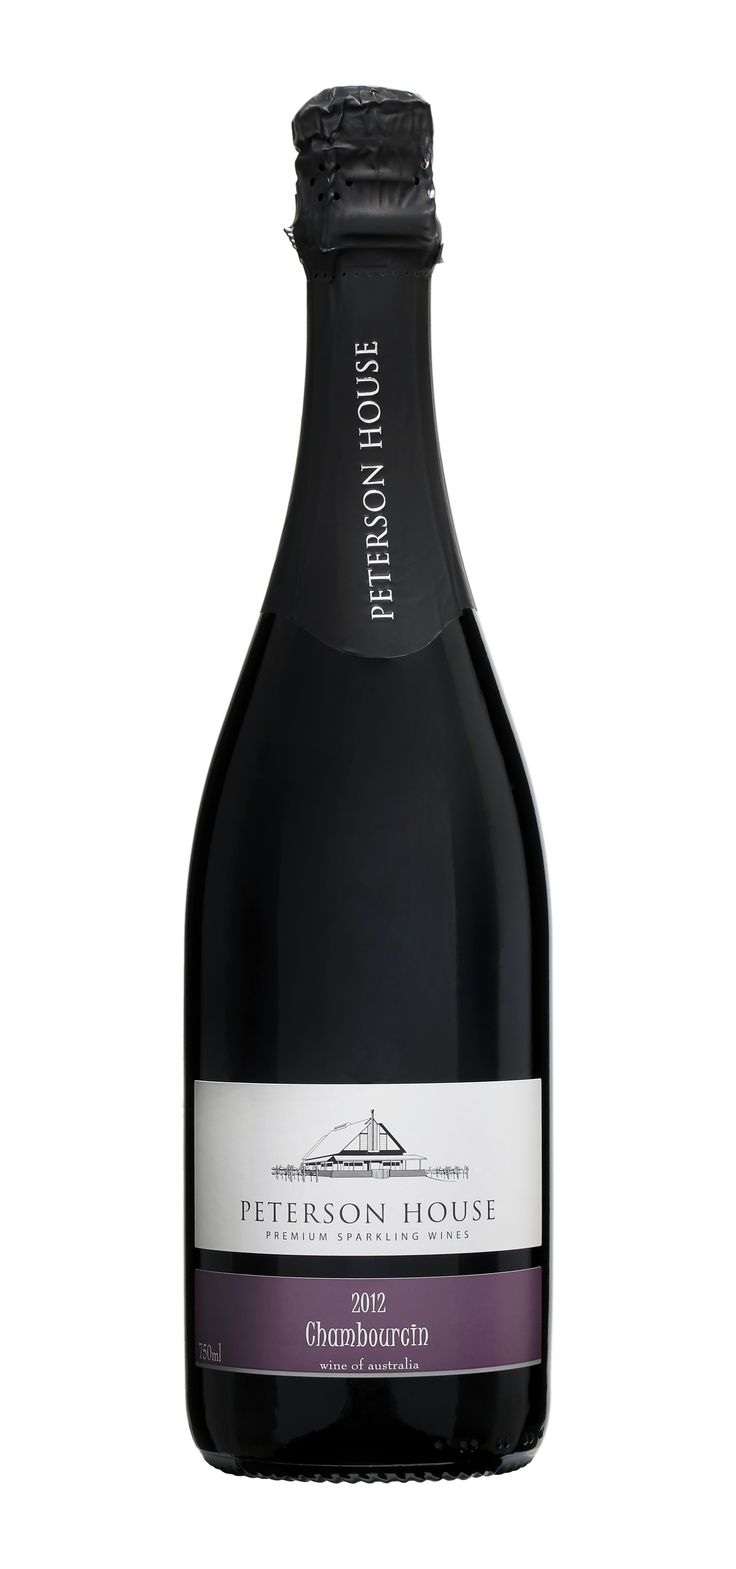 Peterson House, Sparkling Chambourcin 2012